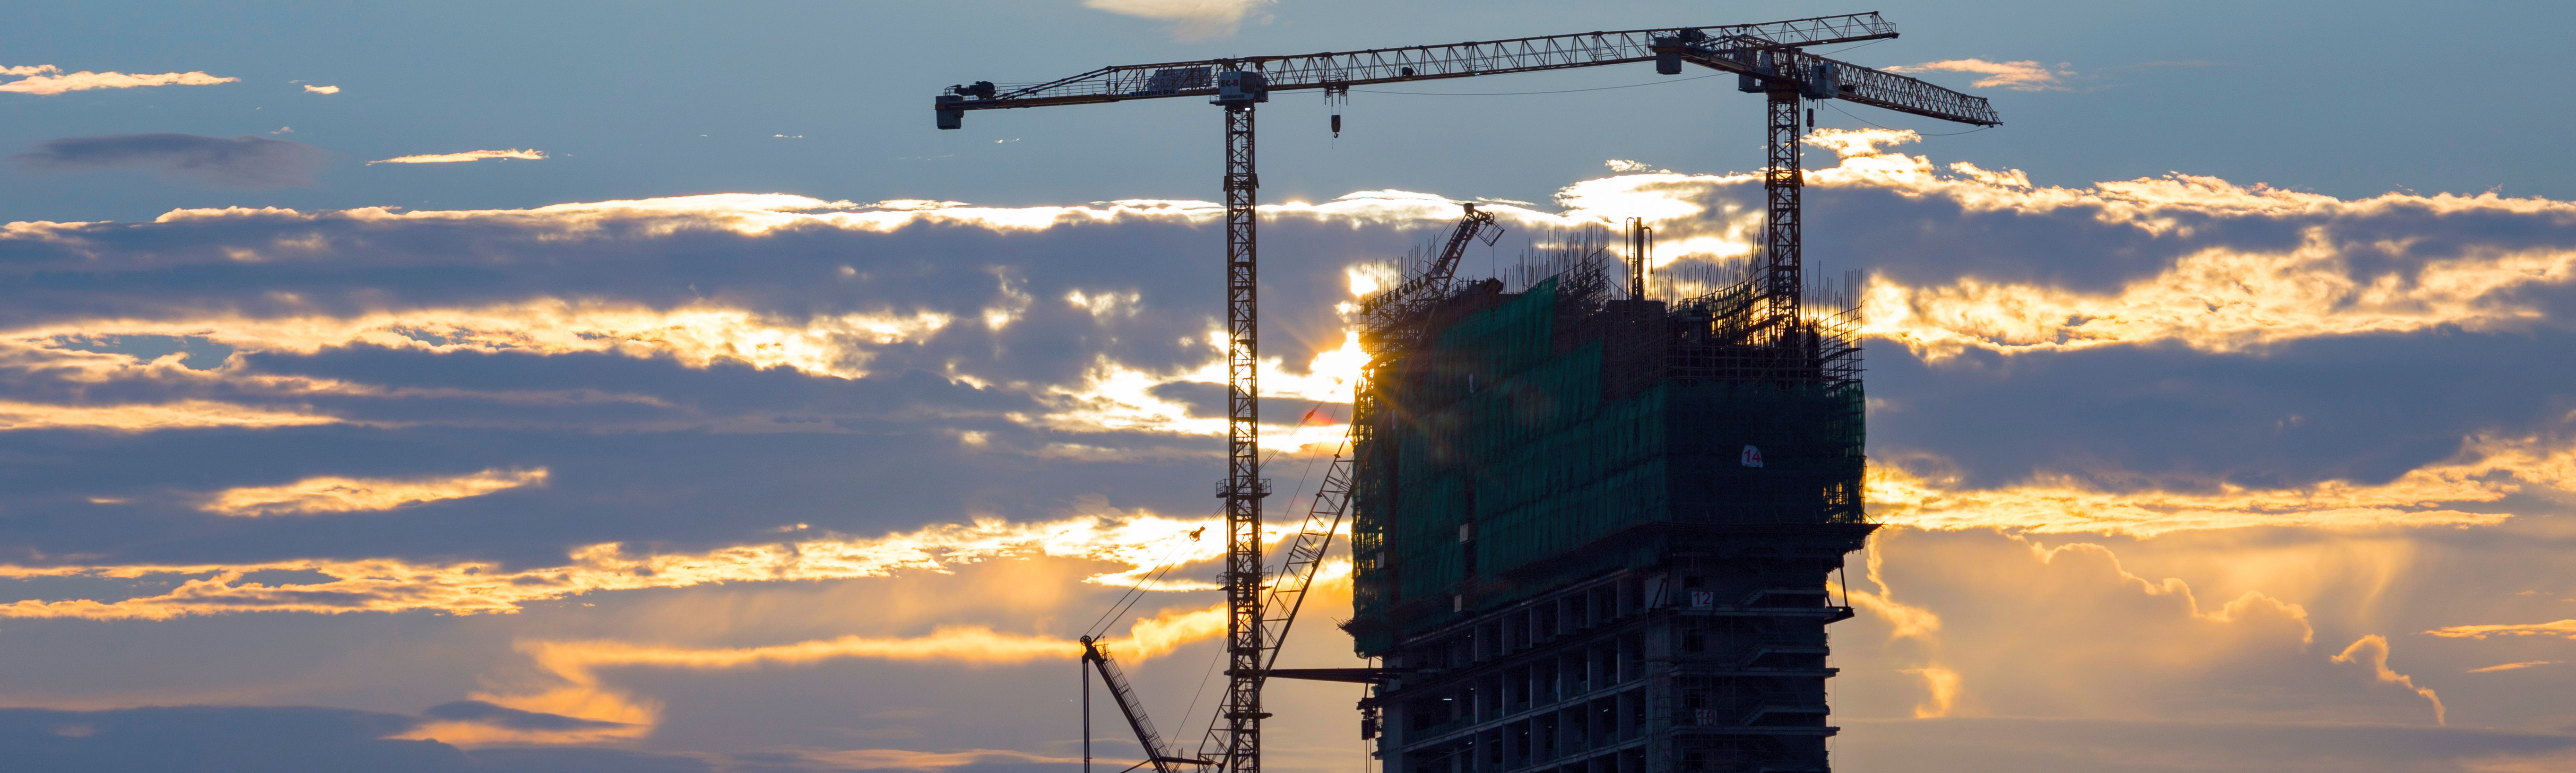 11 Construction Industry Trends for 2020